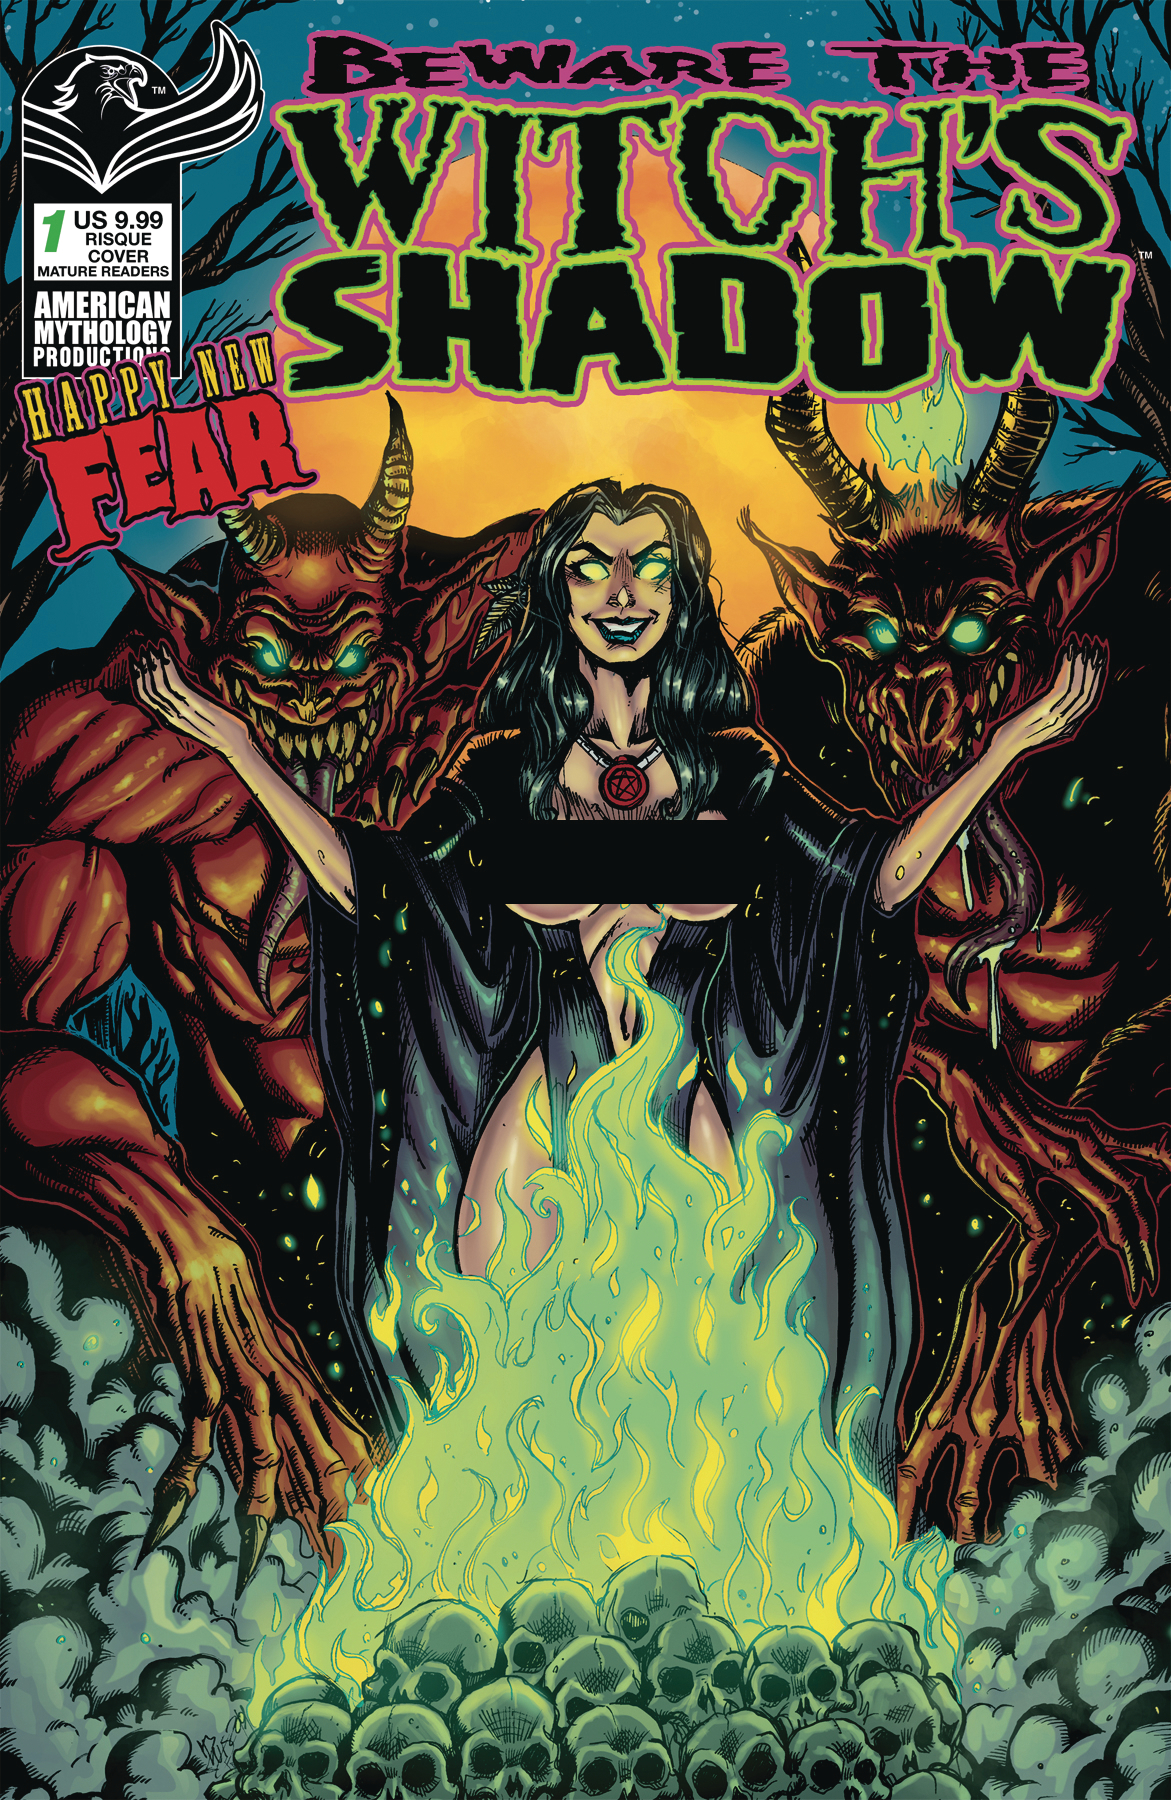 BEWARE WITCH`S SHADOW HAPPY NEW FEAR #1 CVR C CALZADA RISQUE